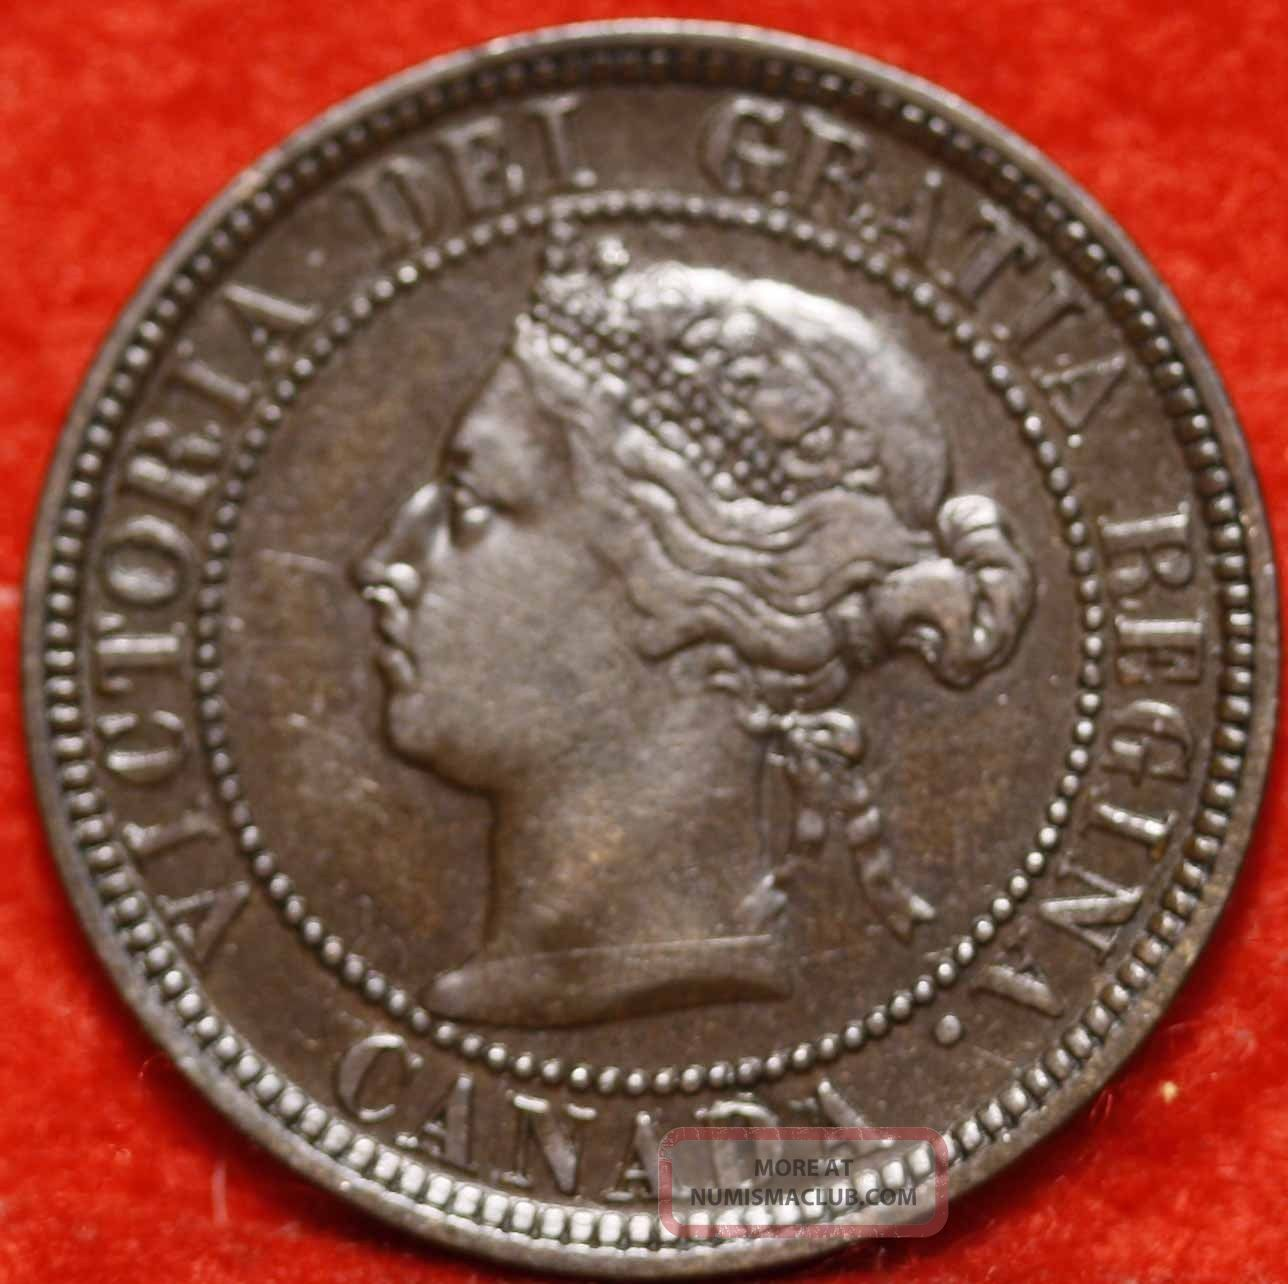 Uncirculated 1884 Canada One Cent Foreign Coin S/h Coins: Canada photo